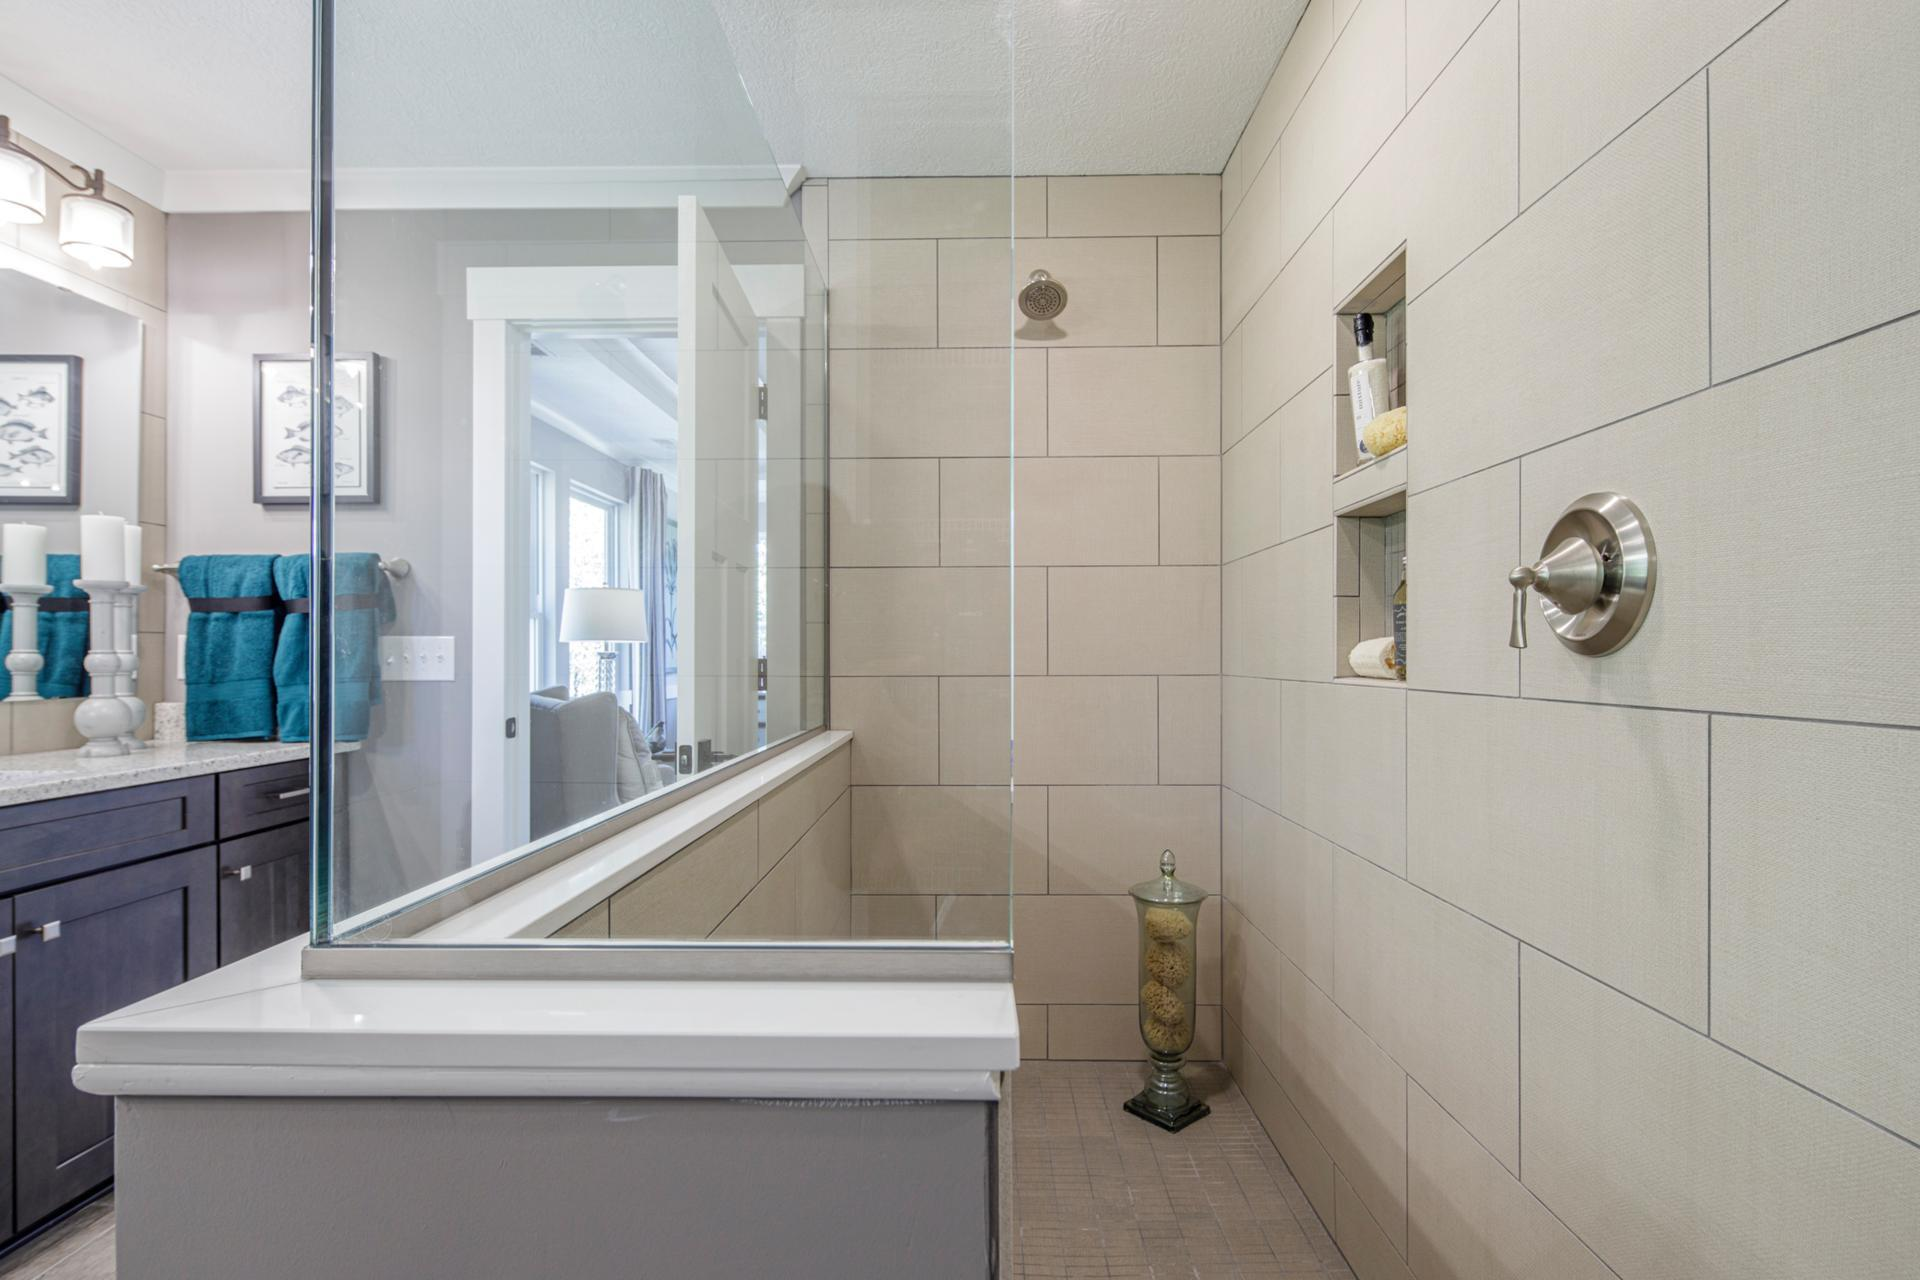 Bathroom featured in the Vanderburgh By Drees Homes in Cleveland, OH